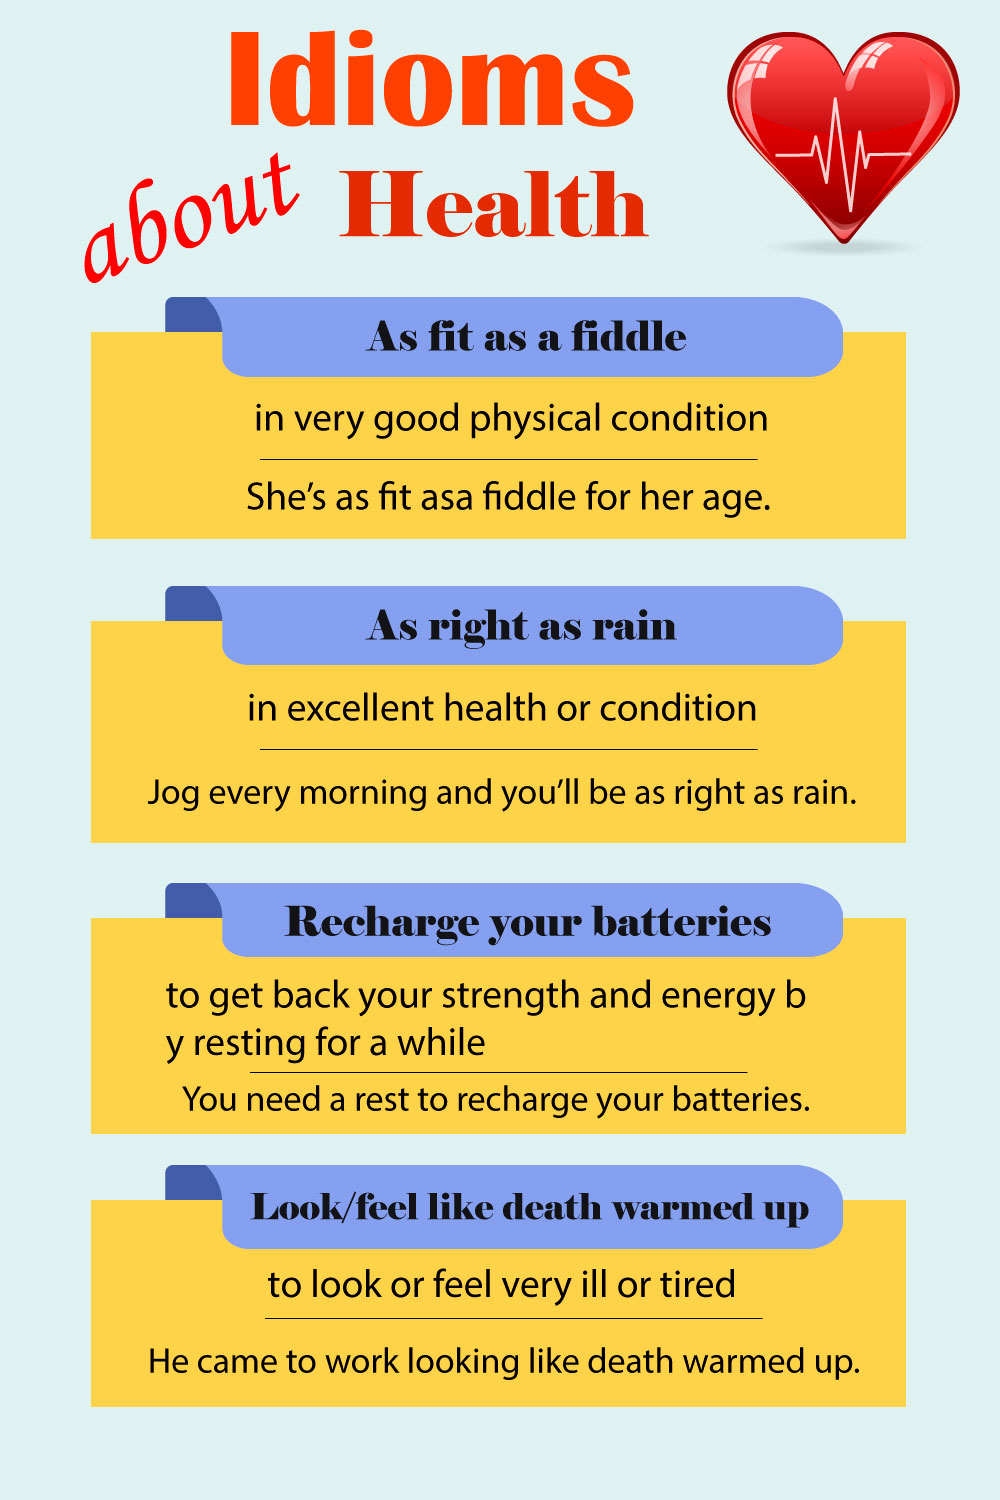 Idioms about health